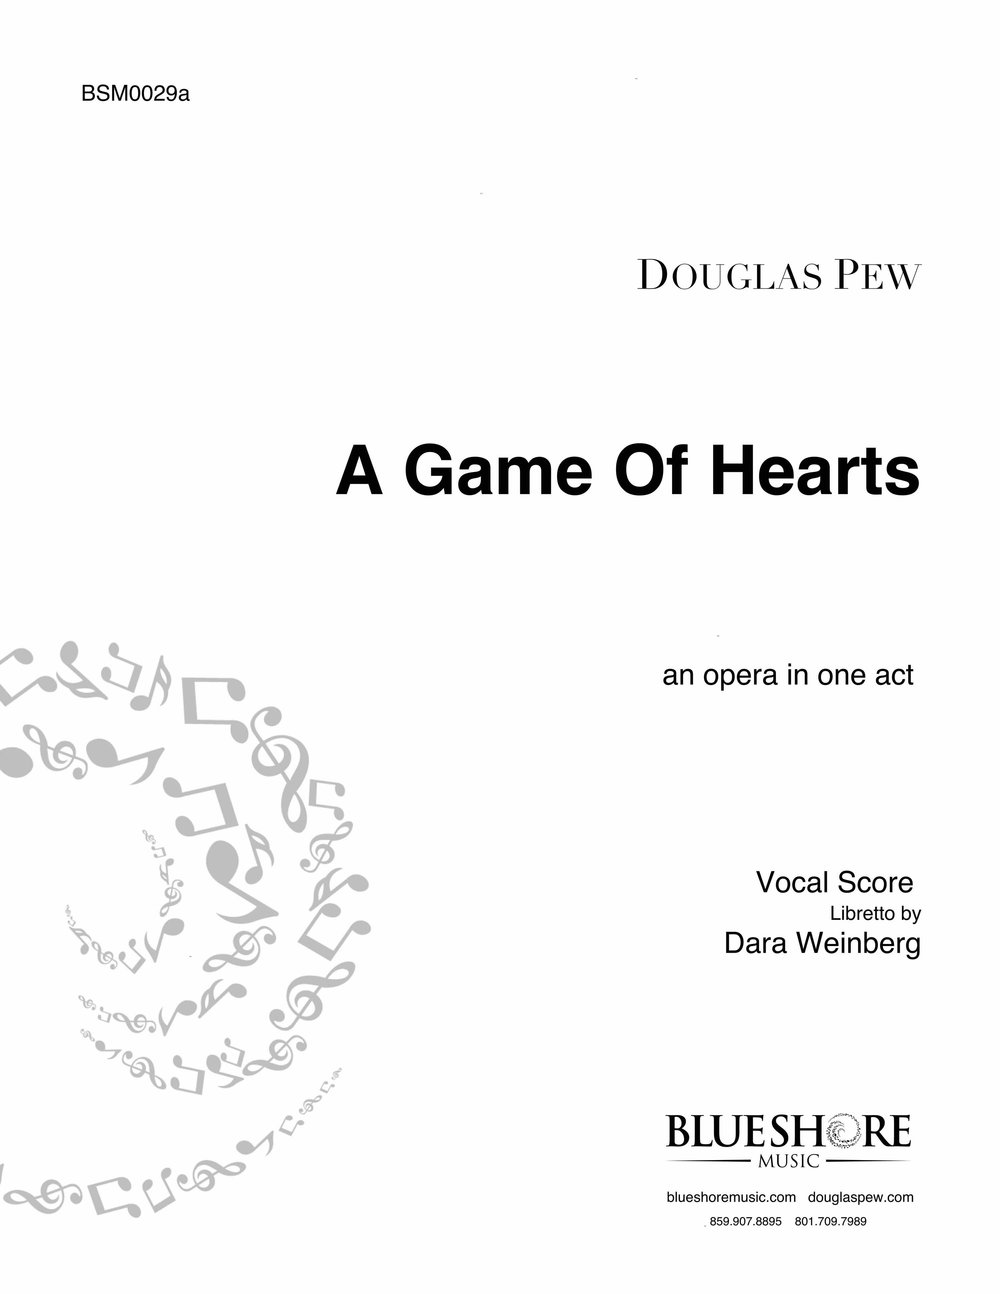 A Game of Hearts, an opera in one act